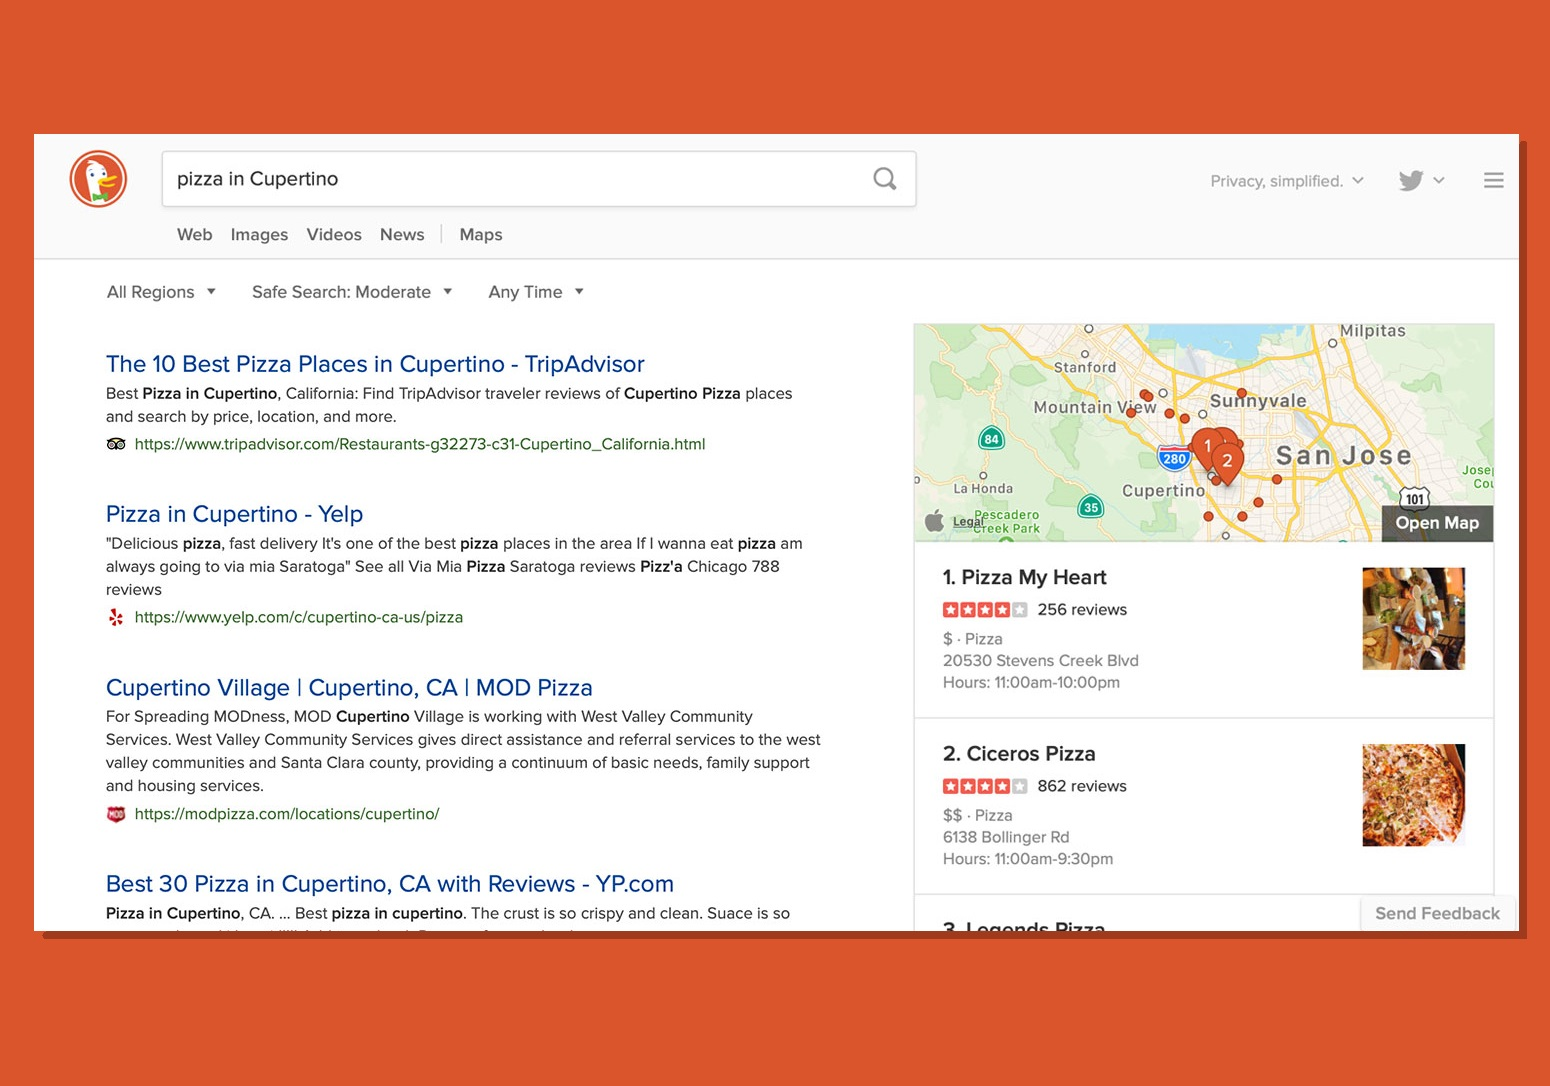 DuckDuckGo adds Apple Maps for local searches on the web